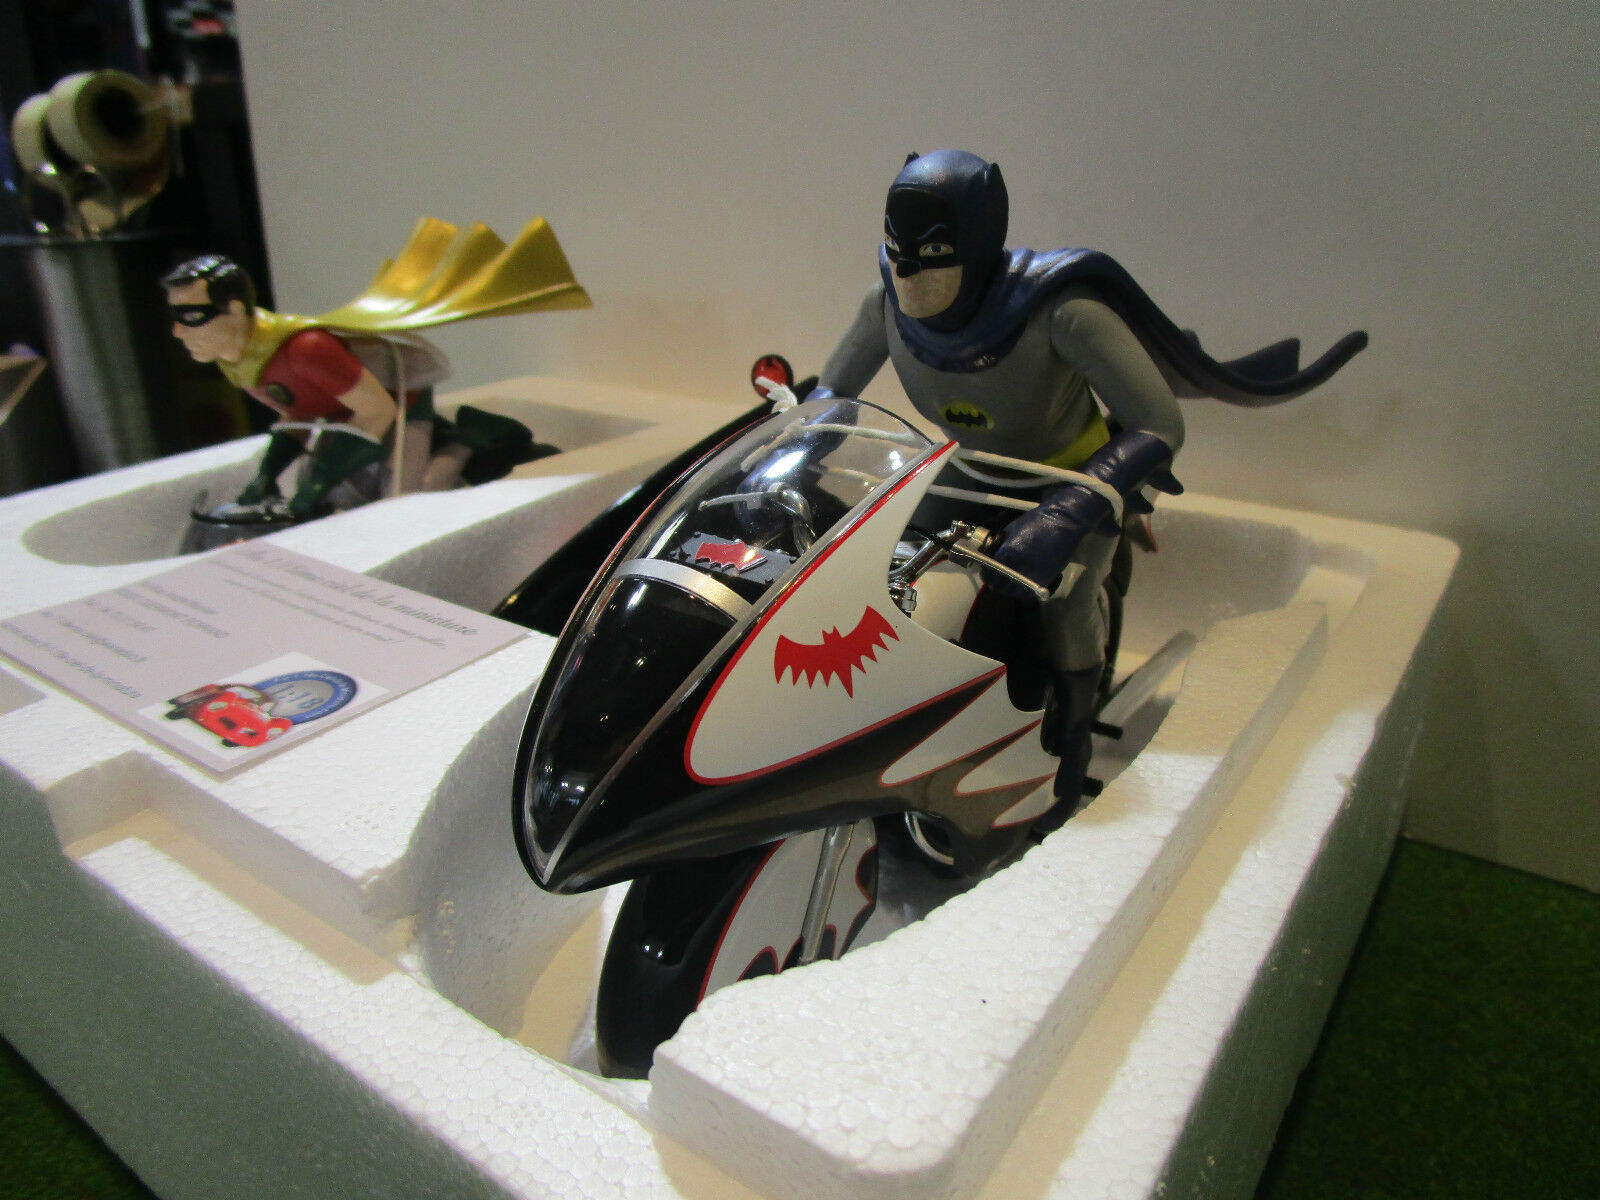 BATCYCLE BATMAN moto + FIGURINES 1 12 HOT WHEELS ELITE CMC85 miniature collectio